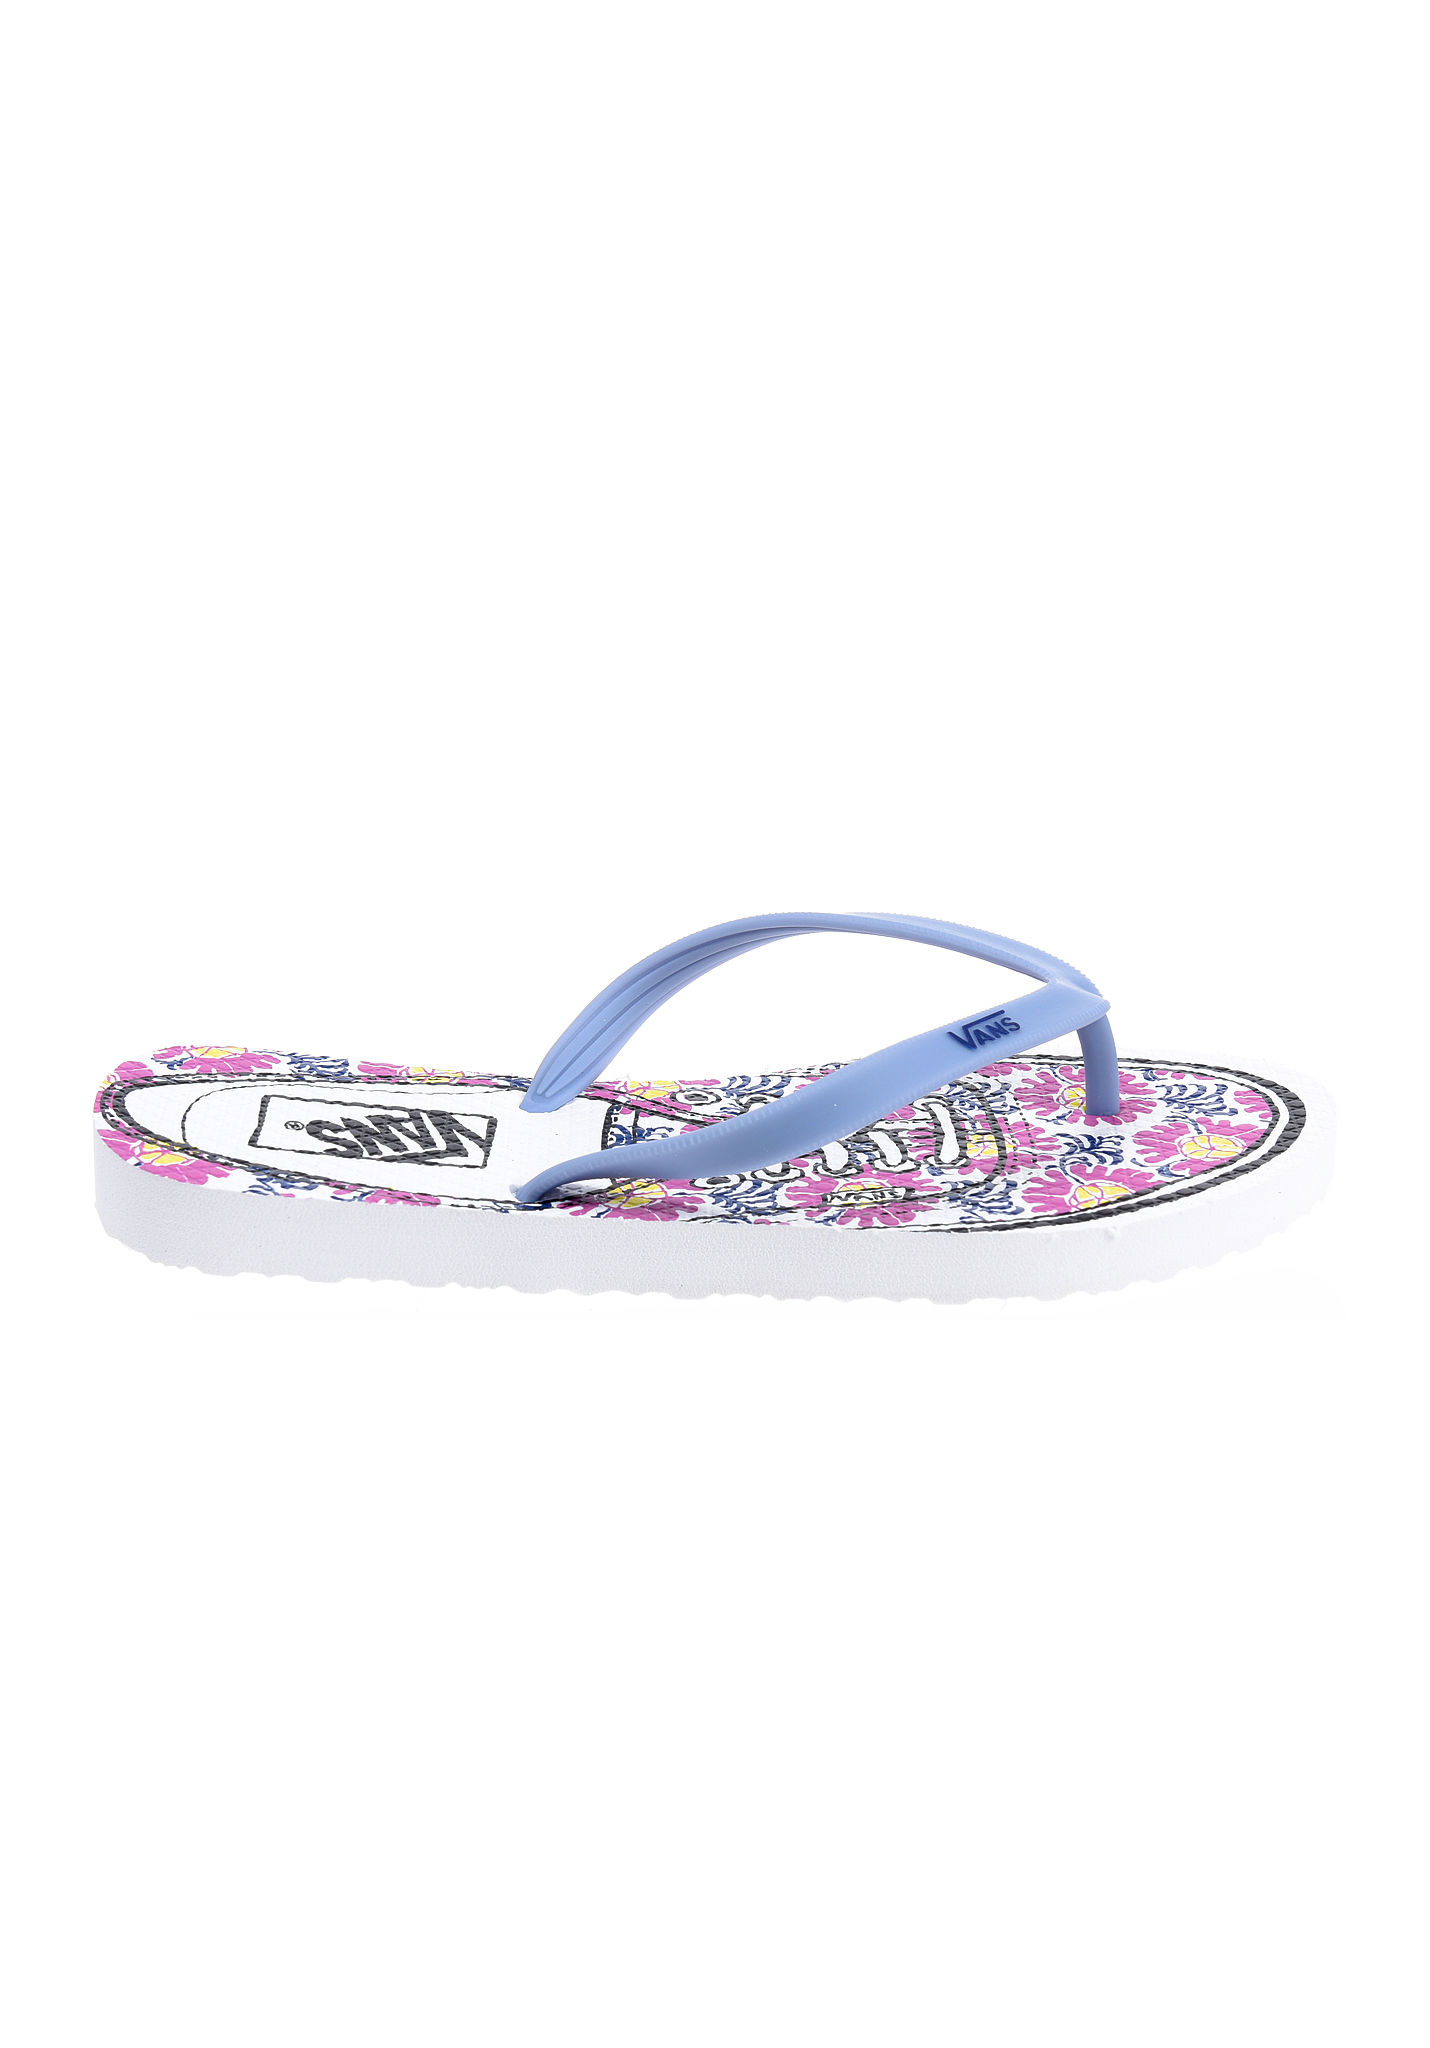 9e1f5a93644ab8 Vans Hanelei - Sandals for Women - Blue - Planet Sports